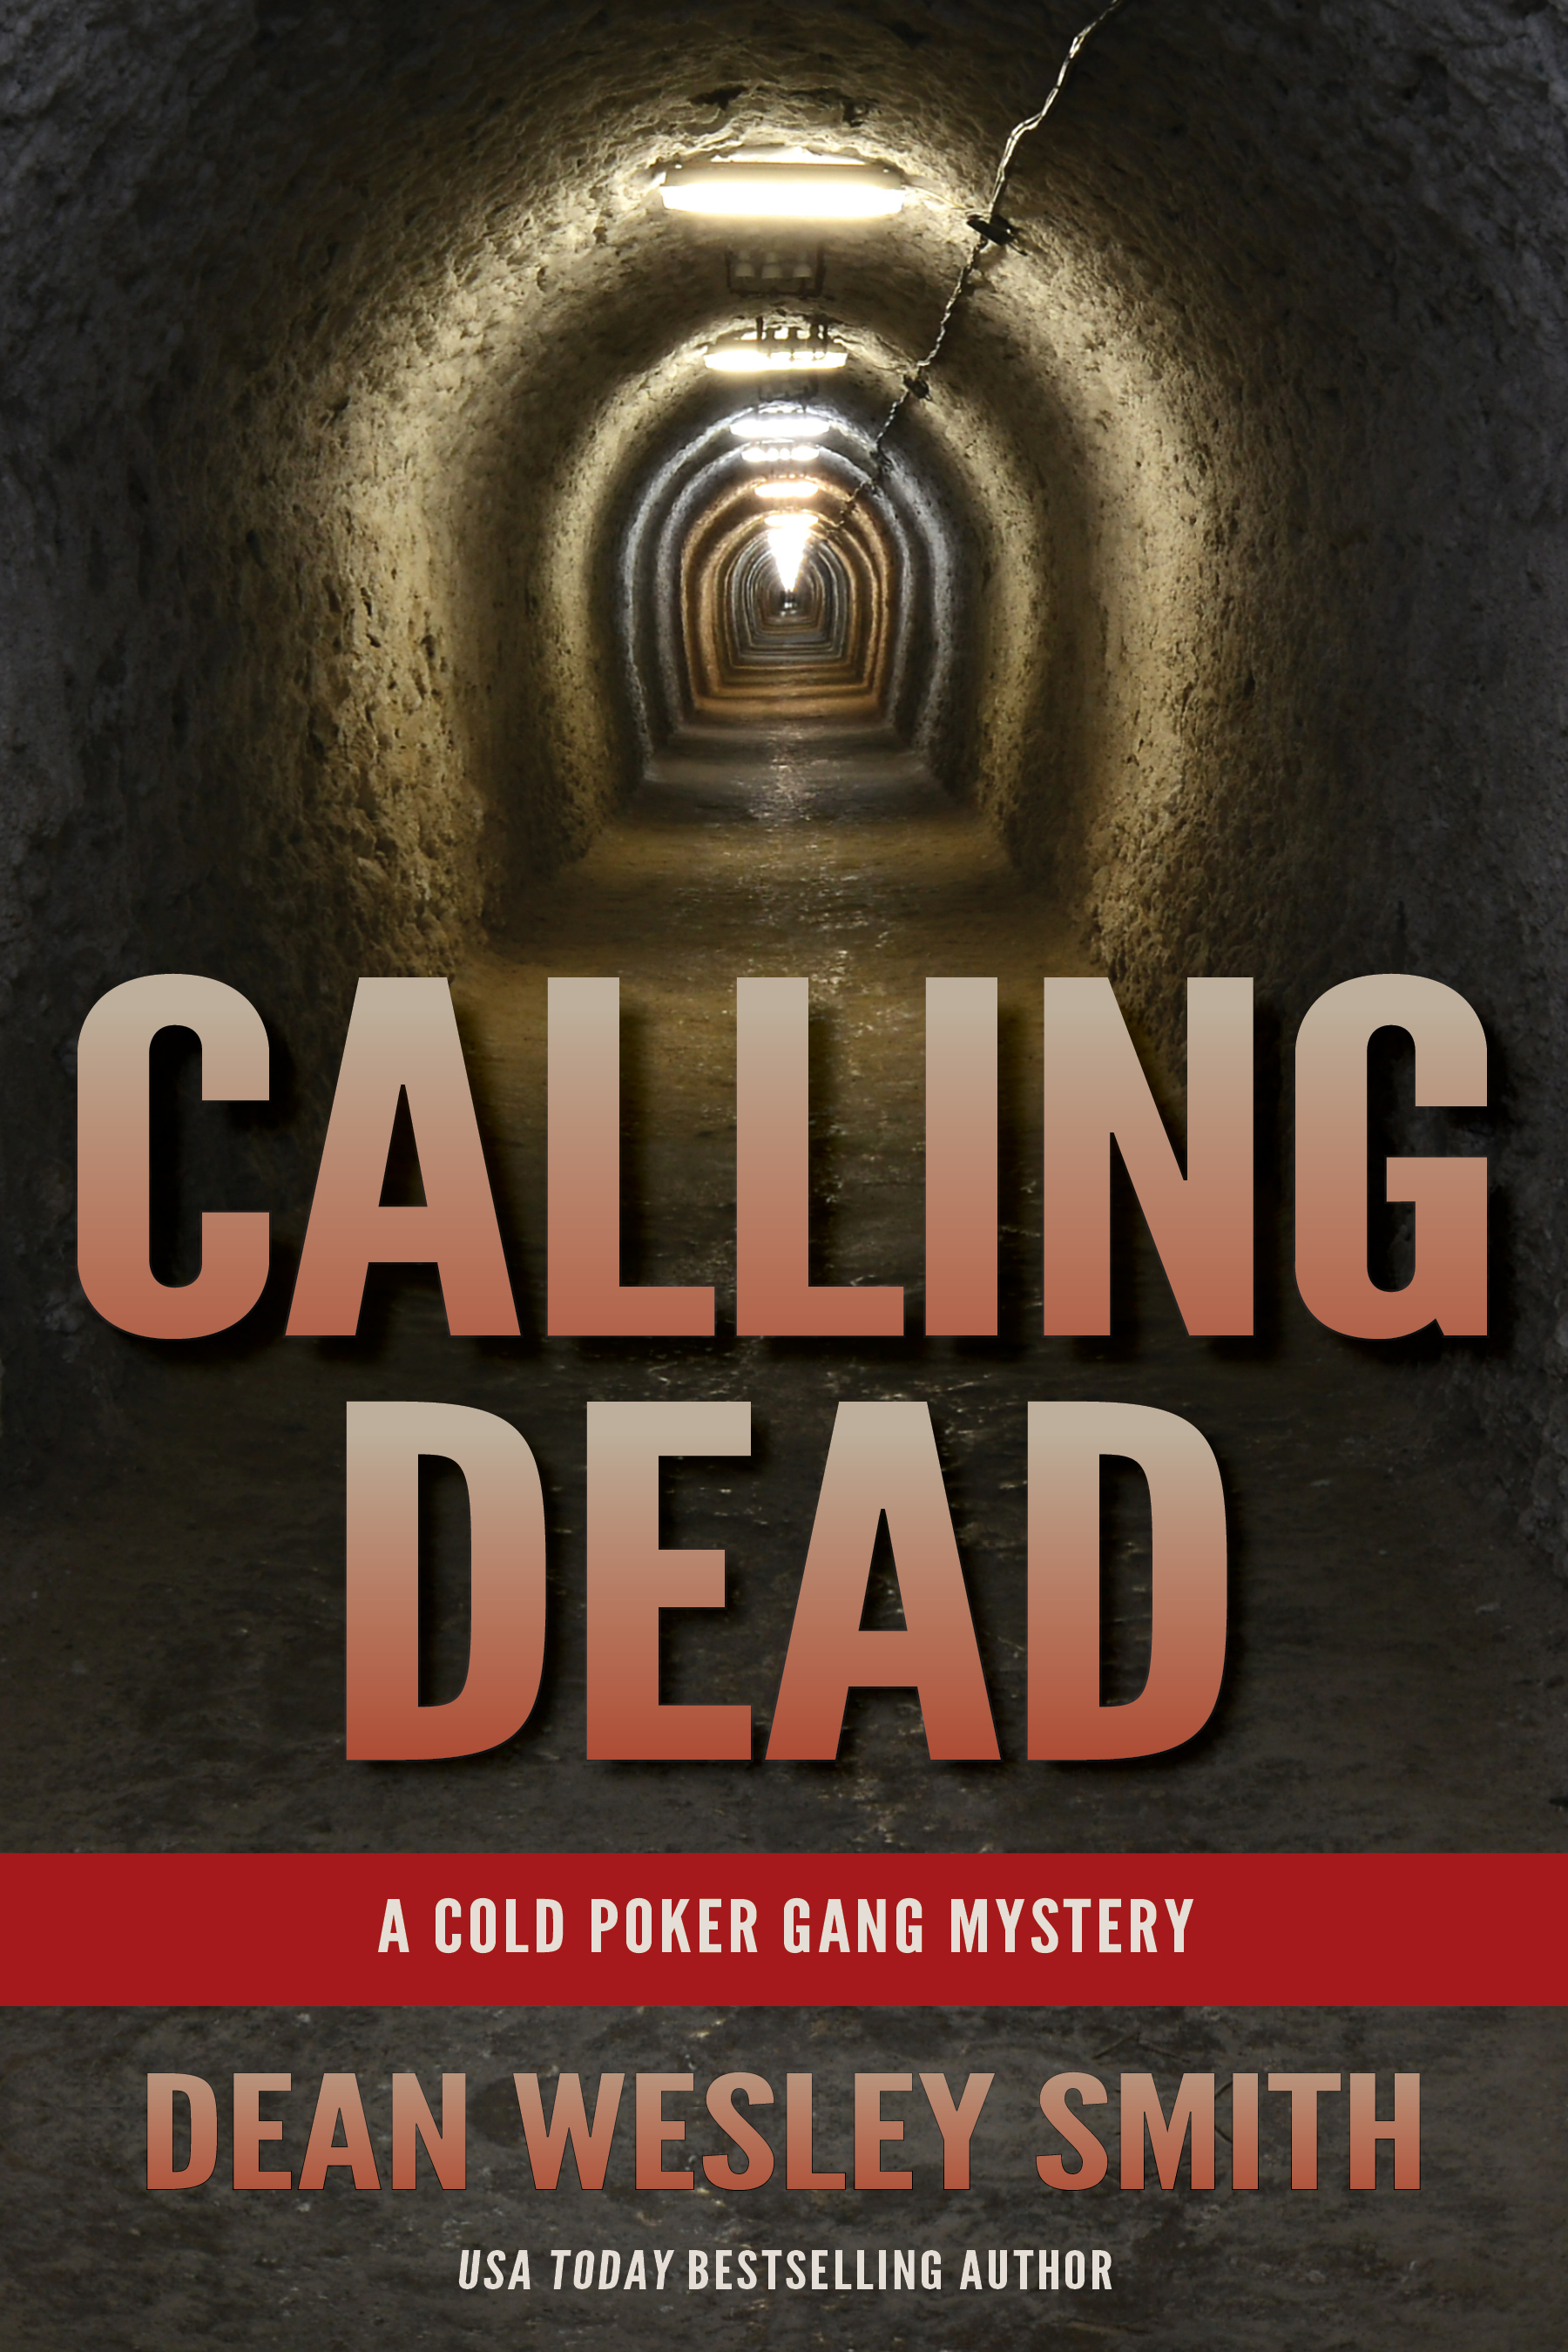 Calling Dead: A Cold Poker Gang Mystery, an Ebook by Dean Wesley Smith